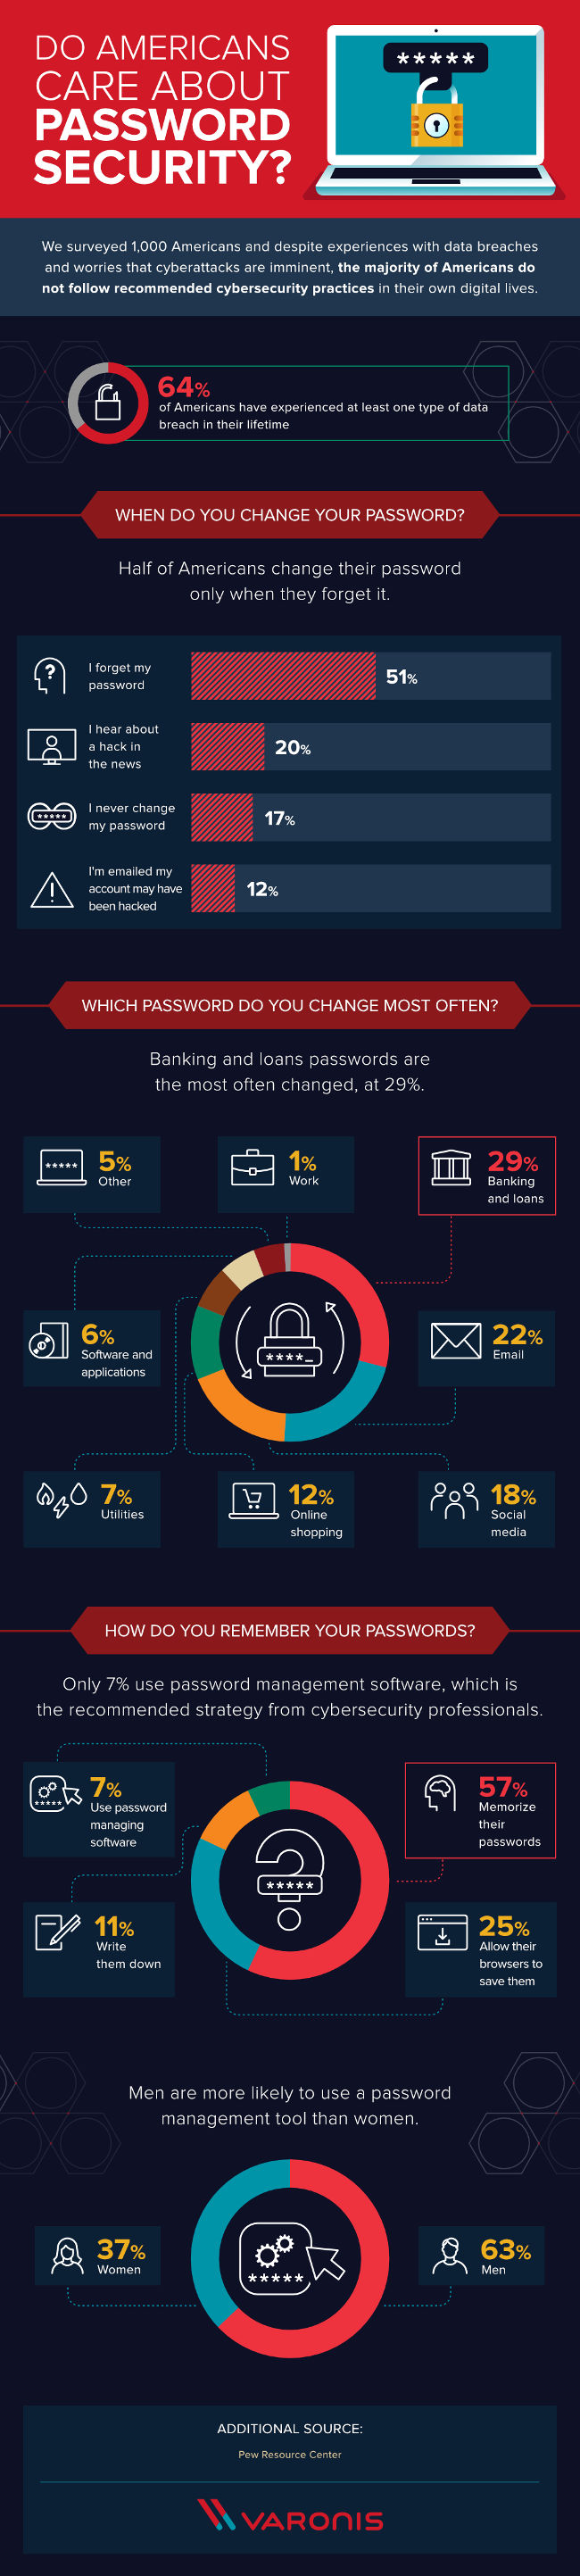 Do Americans Care About Password Security? [Infographic]